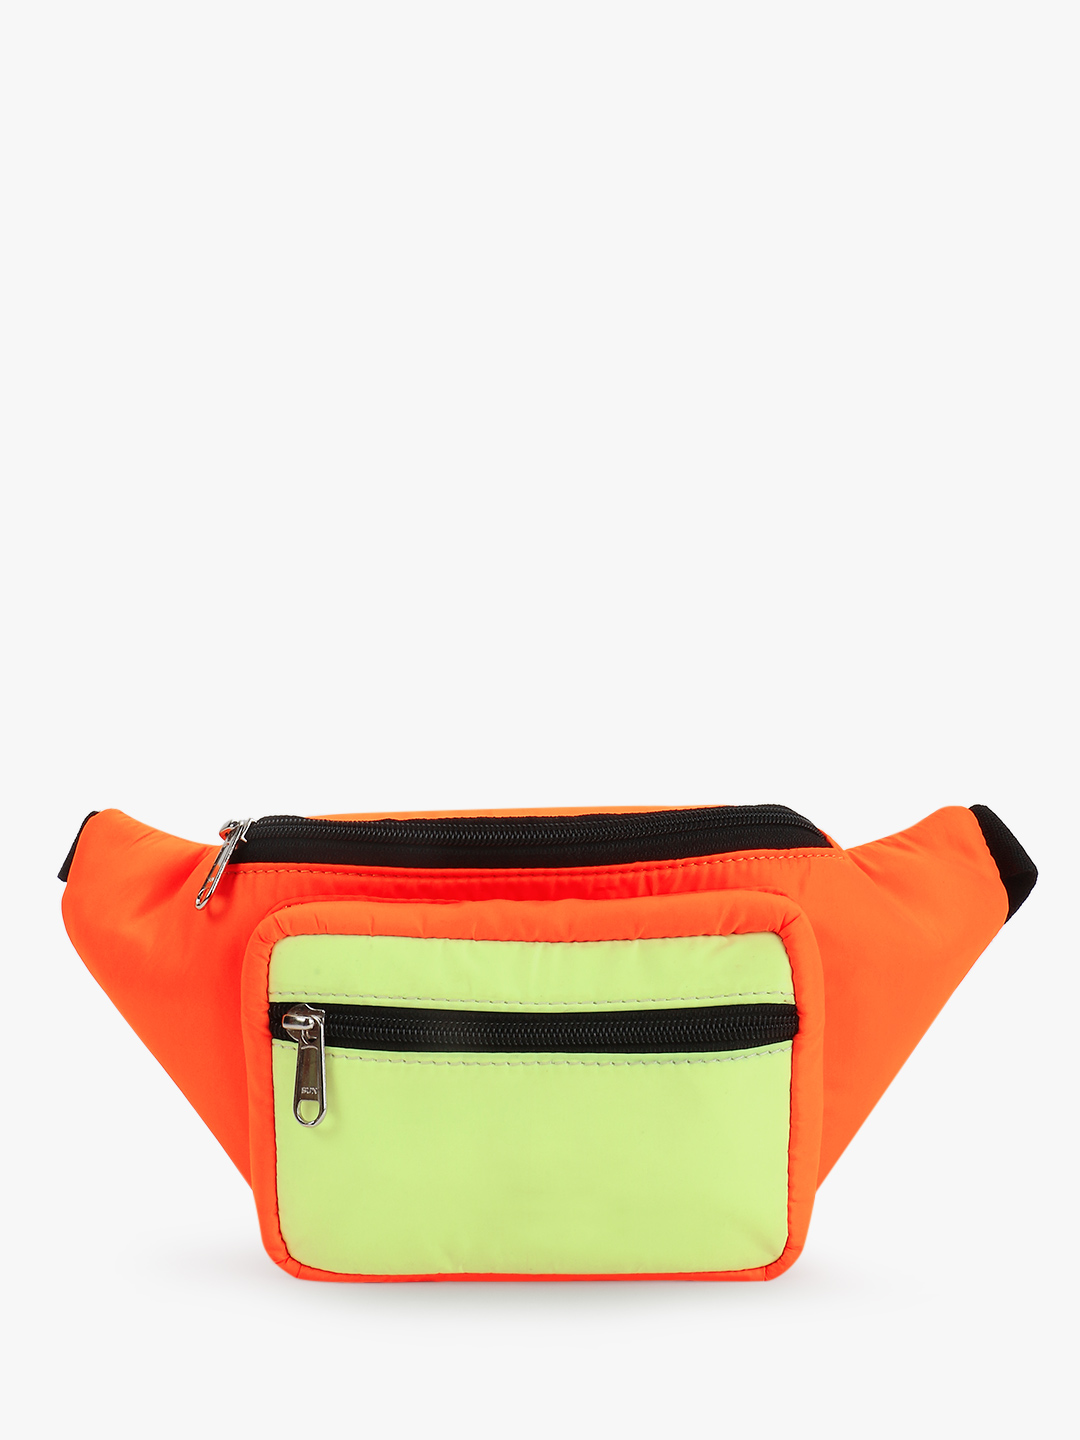 Paris Belle Multi Colour Block Bum Bag 1